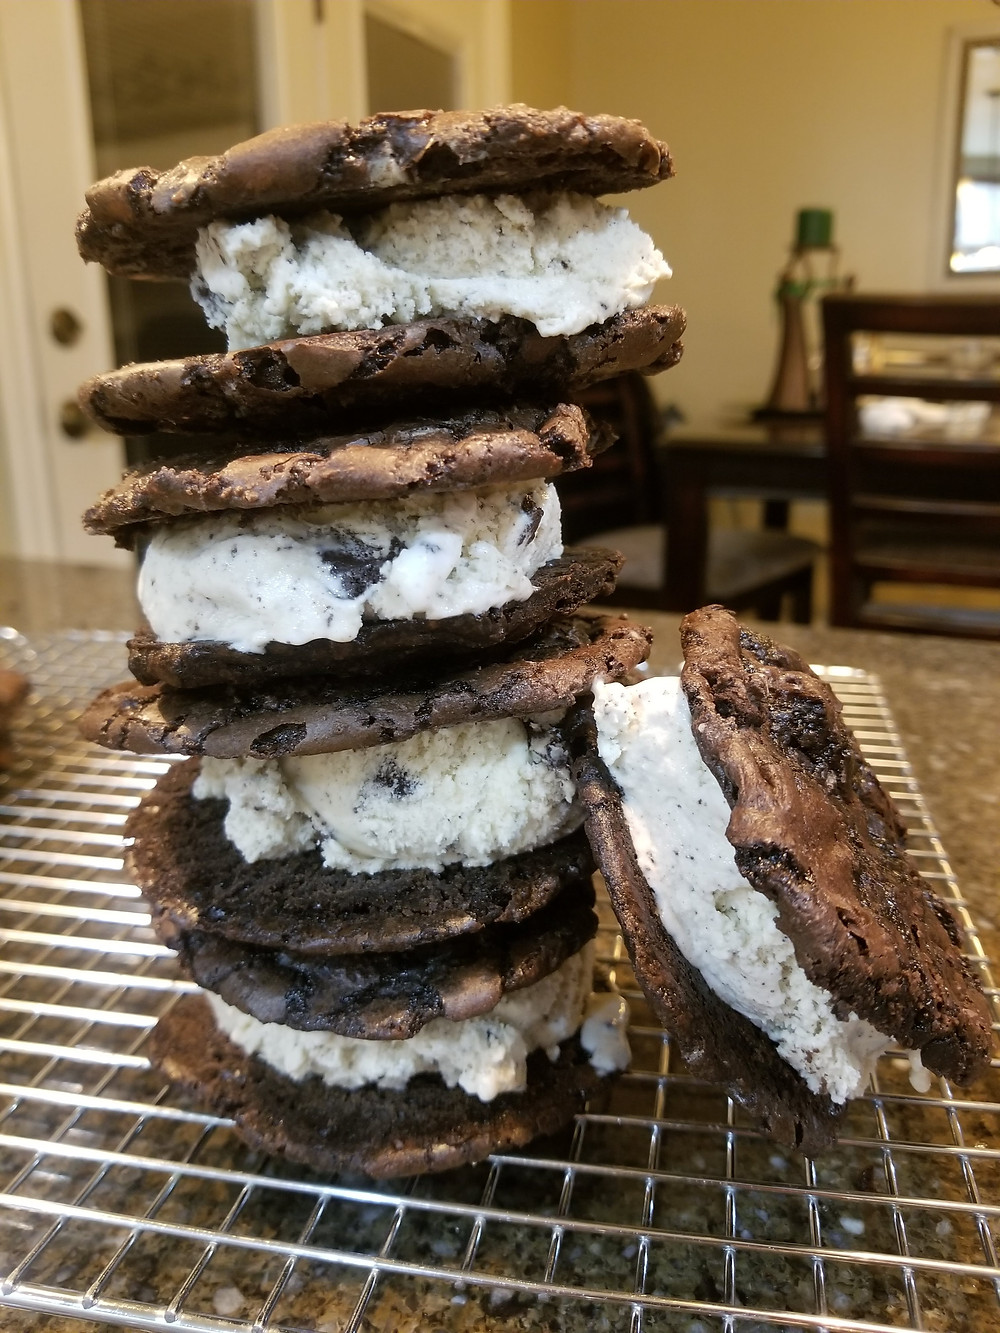 Oreo Ice-cream sandwiches, what to make with brownie mix.